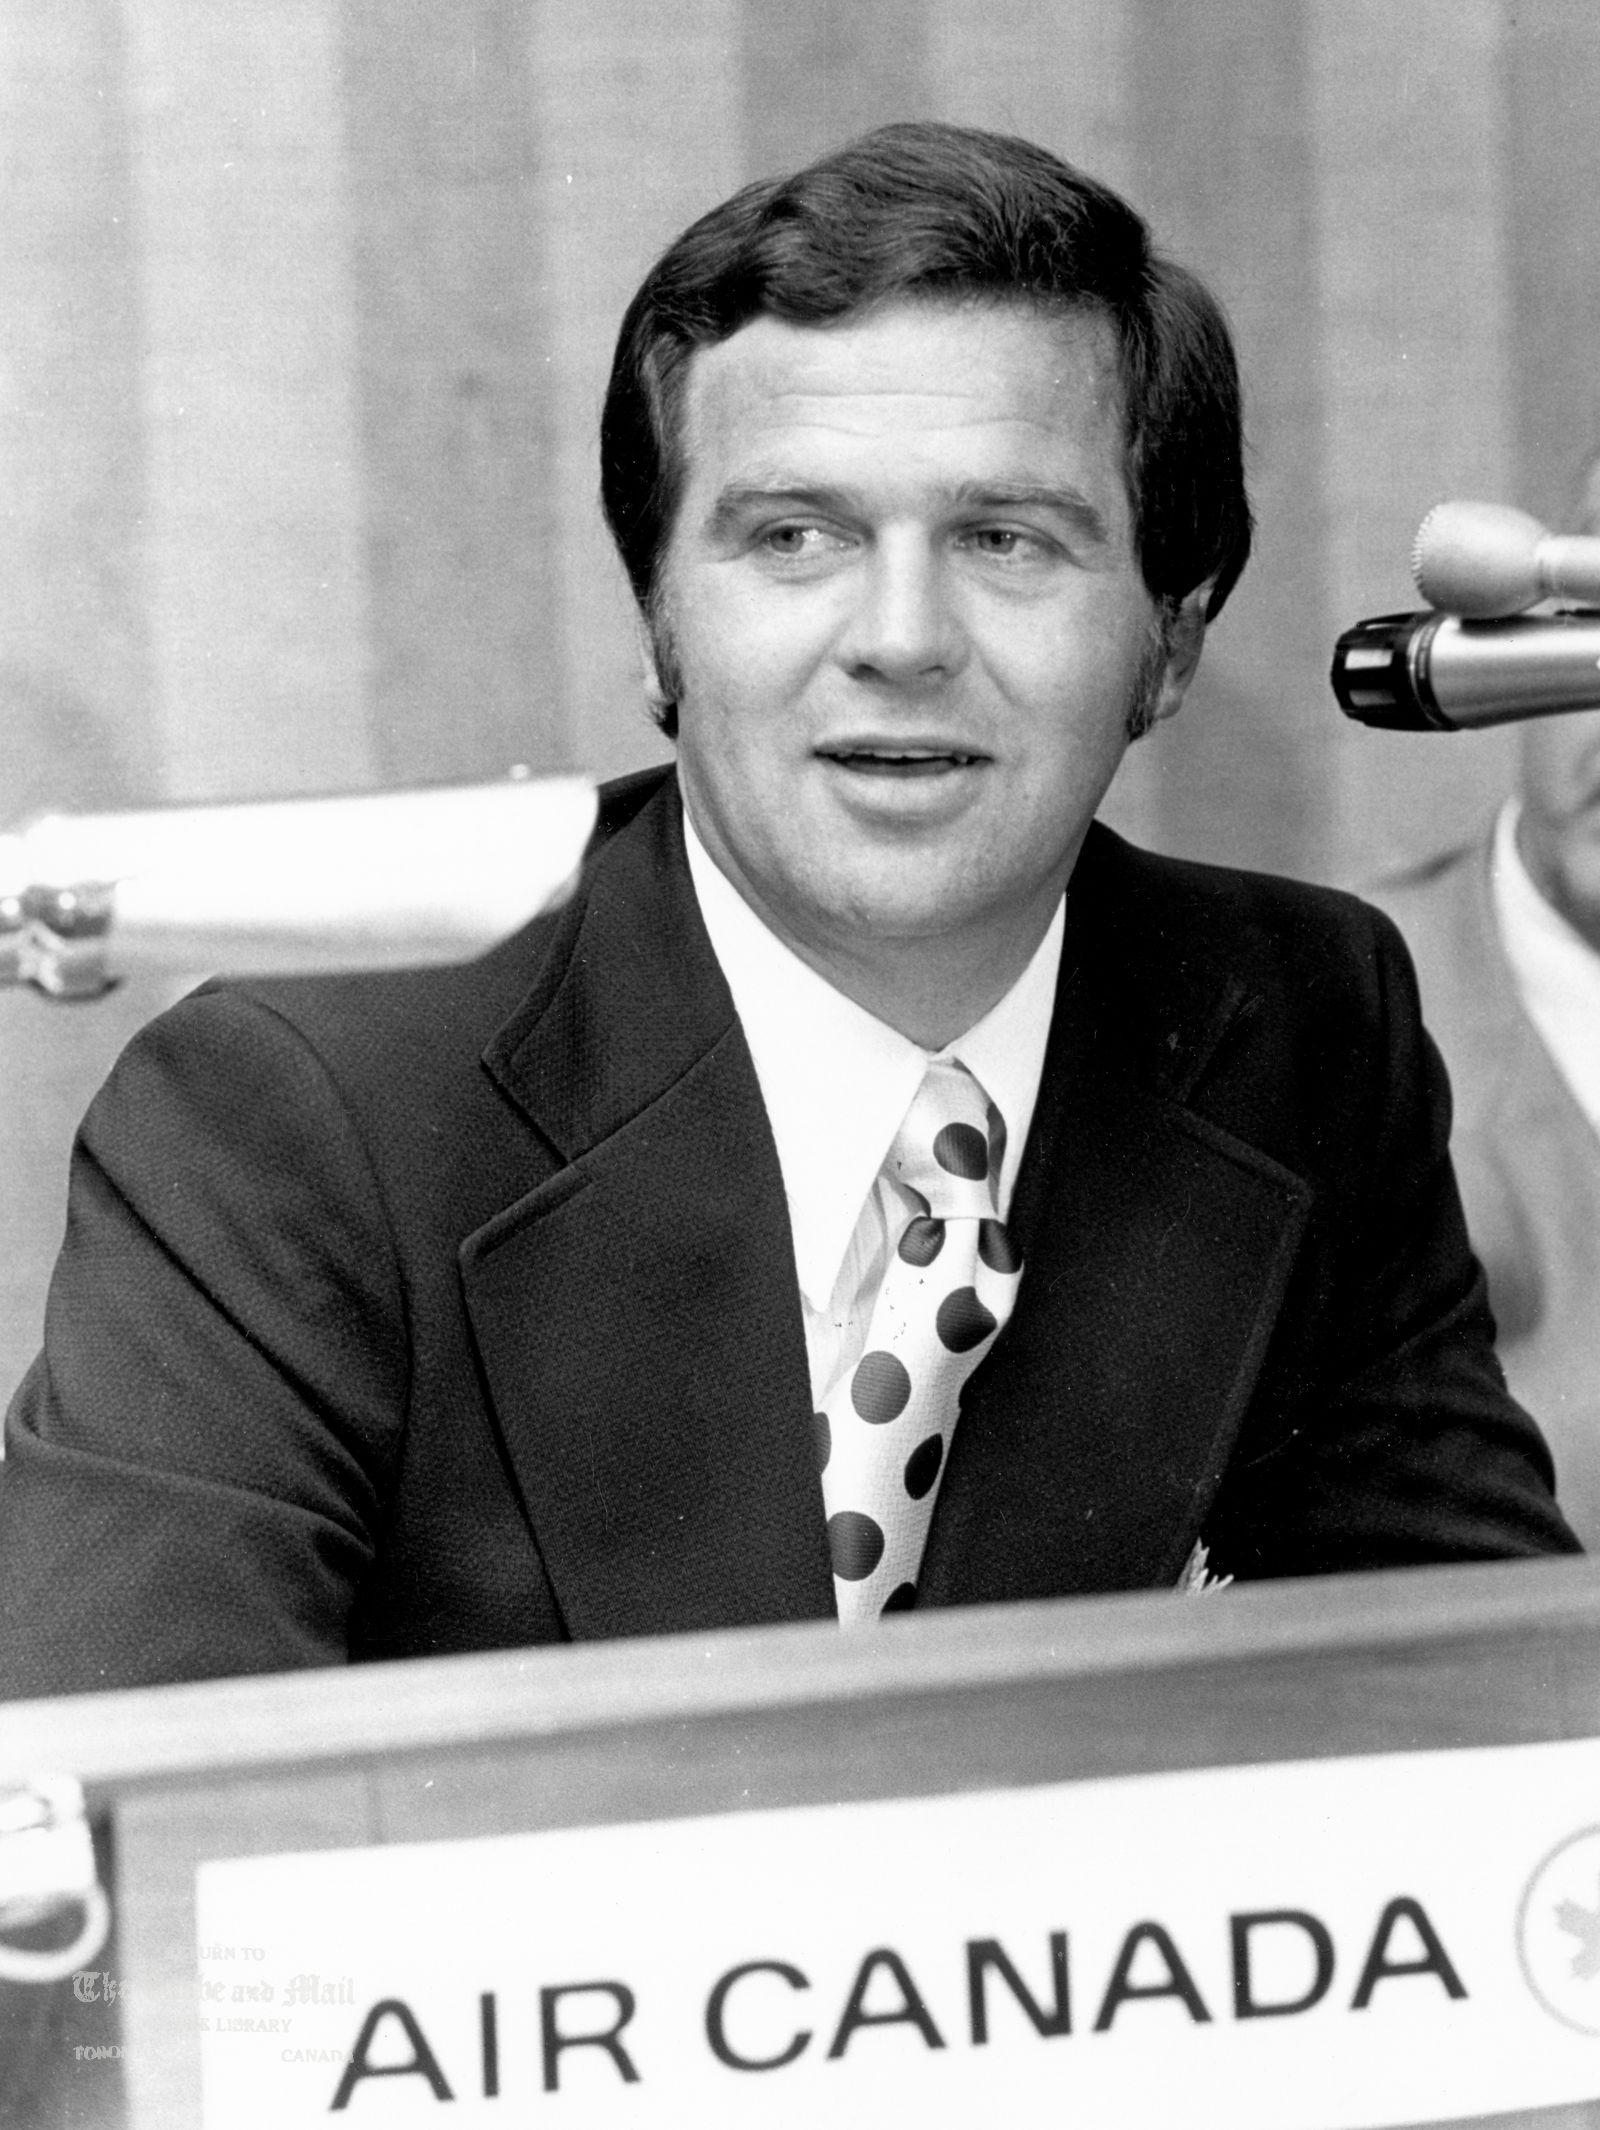 JULY 17, 1972 -- TEAM CANADA TV ARRANGEMENTS -- Team Canada officials gather in Toronto on July 17, 1972 to make announcement concerning television arrangements for upcoming Canada-Russia Summit Series. Team Canada's head coach Harry Sinden speaks into the microphone. Sinden and his group are due to leave this evening for Russia to complete arrangement for the games at Moscow. The series is set to start in Montreal on Sept. 2, 1972. Photo by Tibor Kolley / The Globe and Mail.